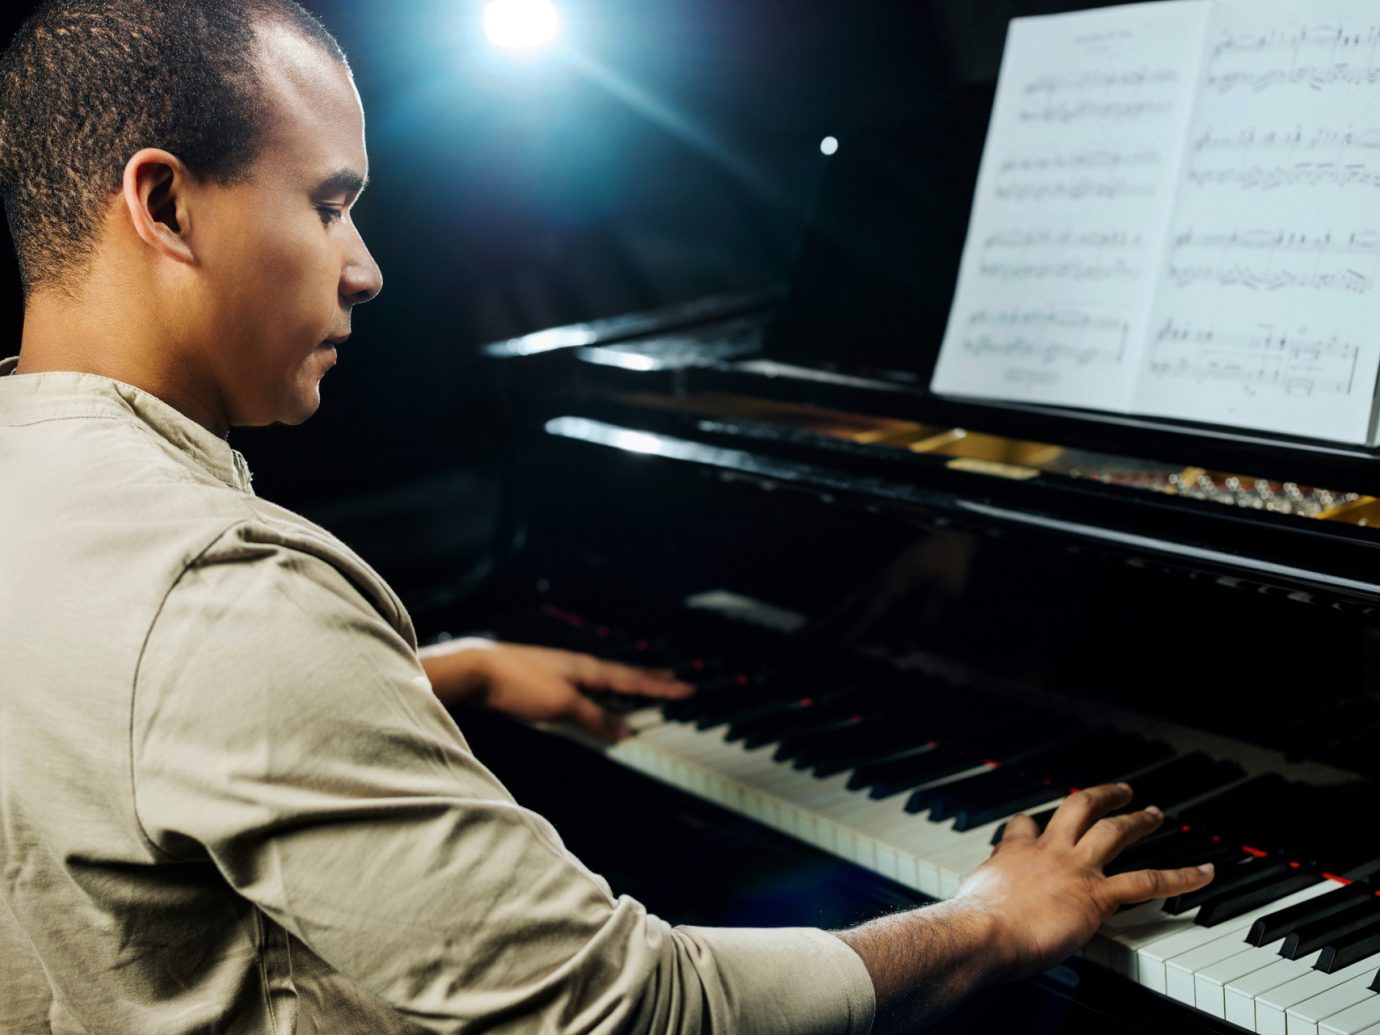 Trip Ideas person Music piano indoor pianist jazz pianist man musician keyboard player player piano string instrument technology musical instrument electronic device musical keyboard keyboard clavier electric organ